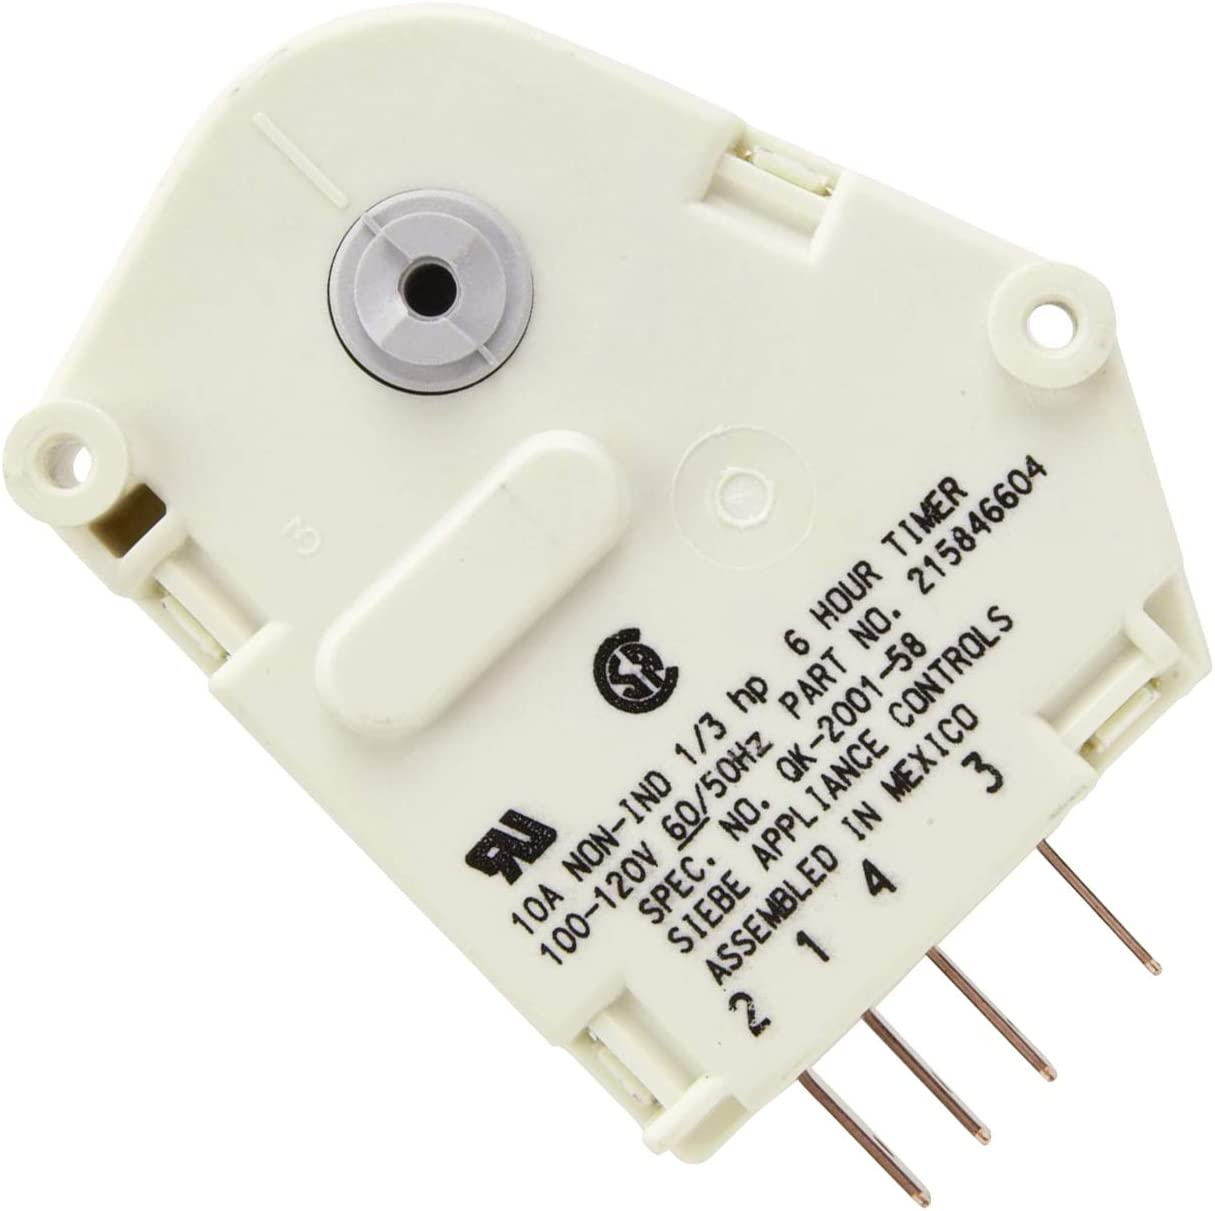 215846604 Refrigerator Defrost Timer Replacement Part by Romalon Compatible With Frigidaire & Kenmore Replace AP259290708003824, 08011620, 1748201